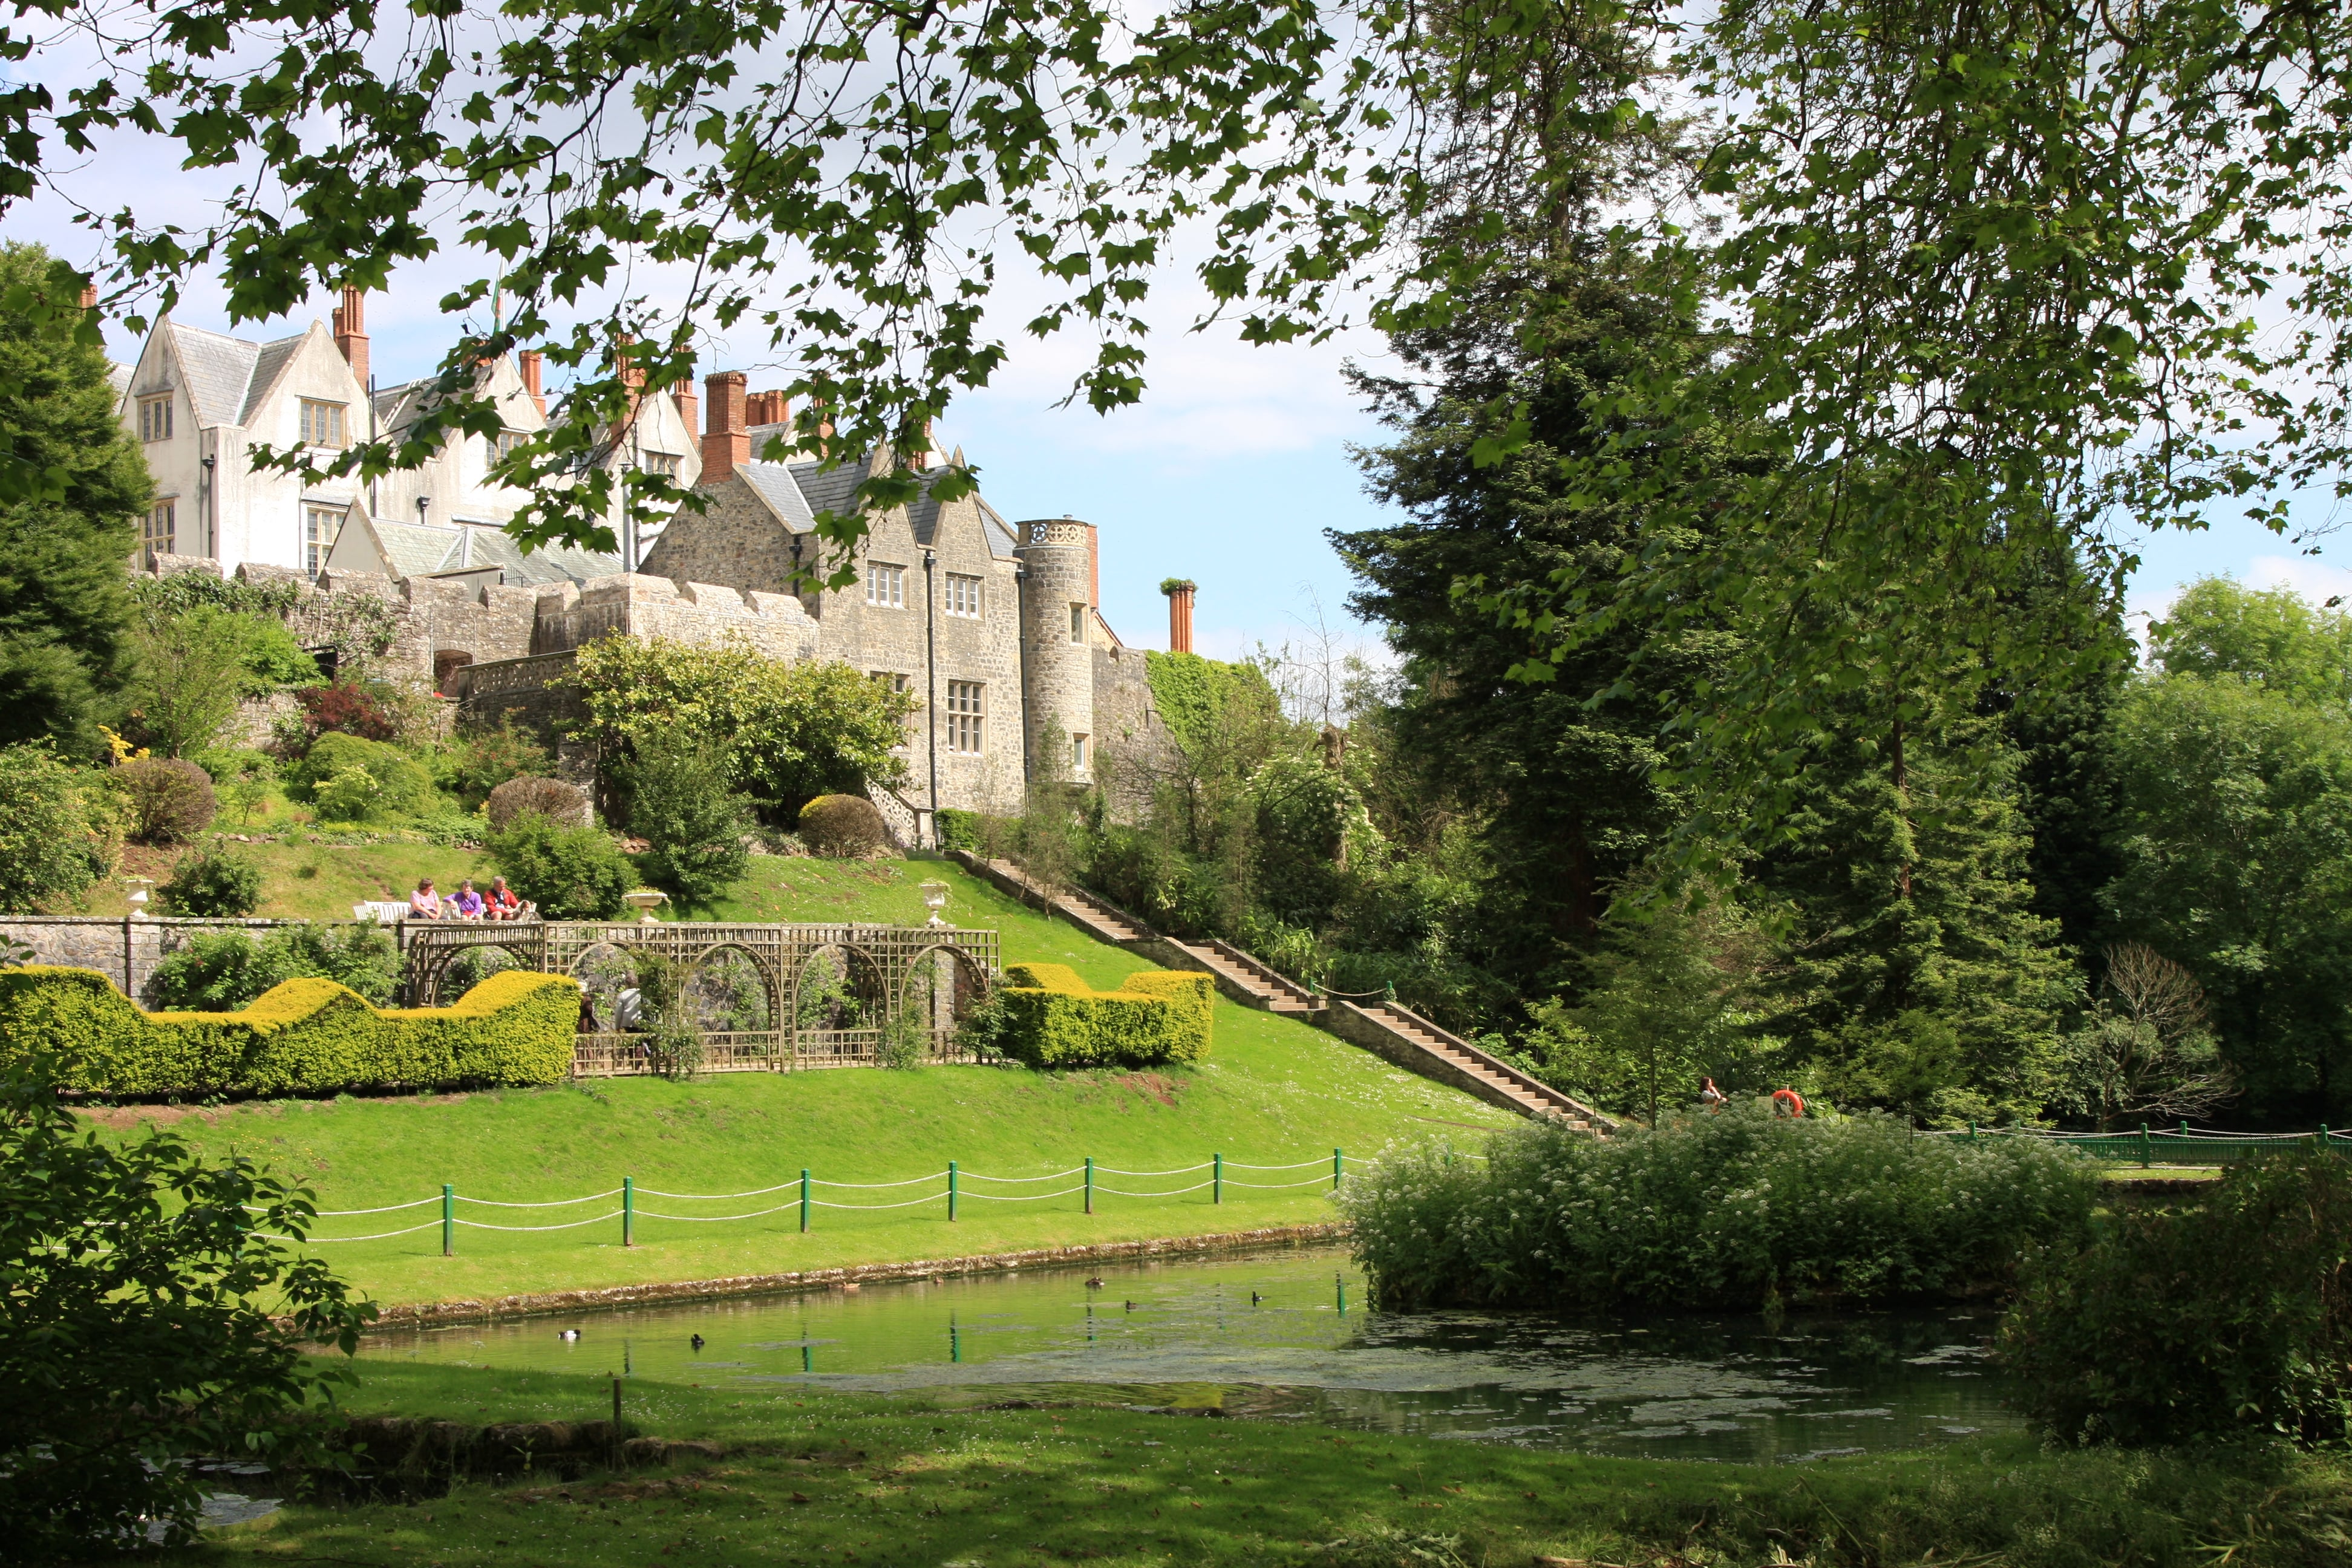 2. St Fagans: Natural History Museum, Cardiff - Free entry to all